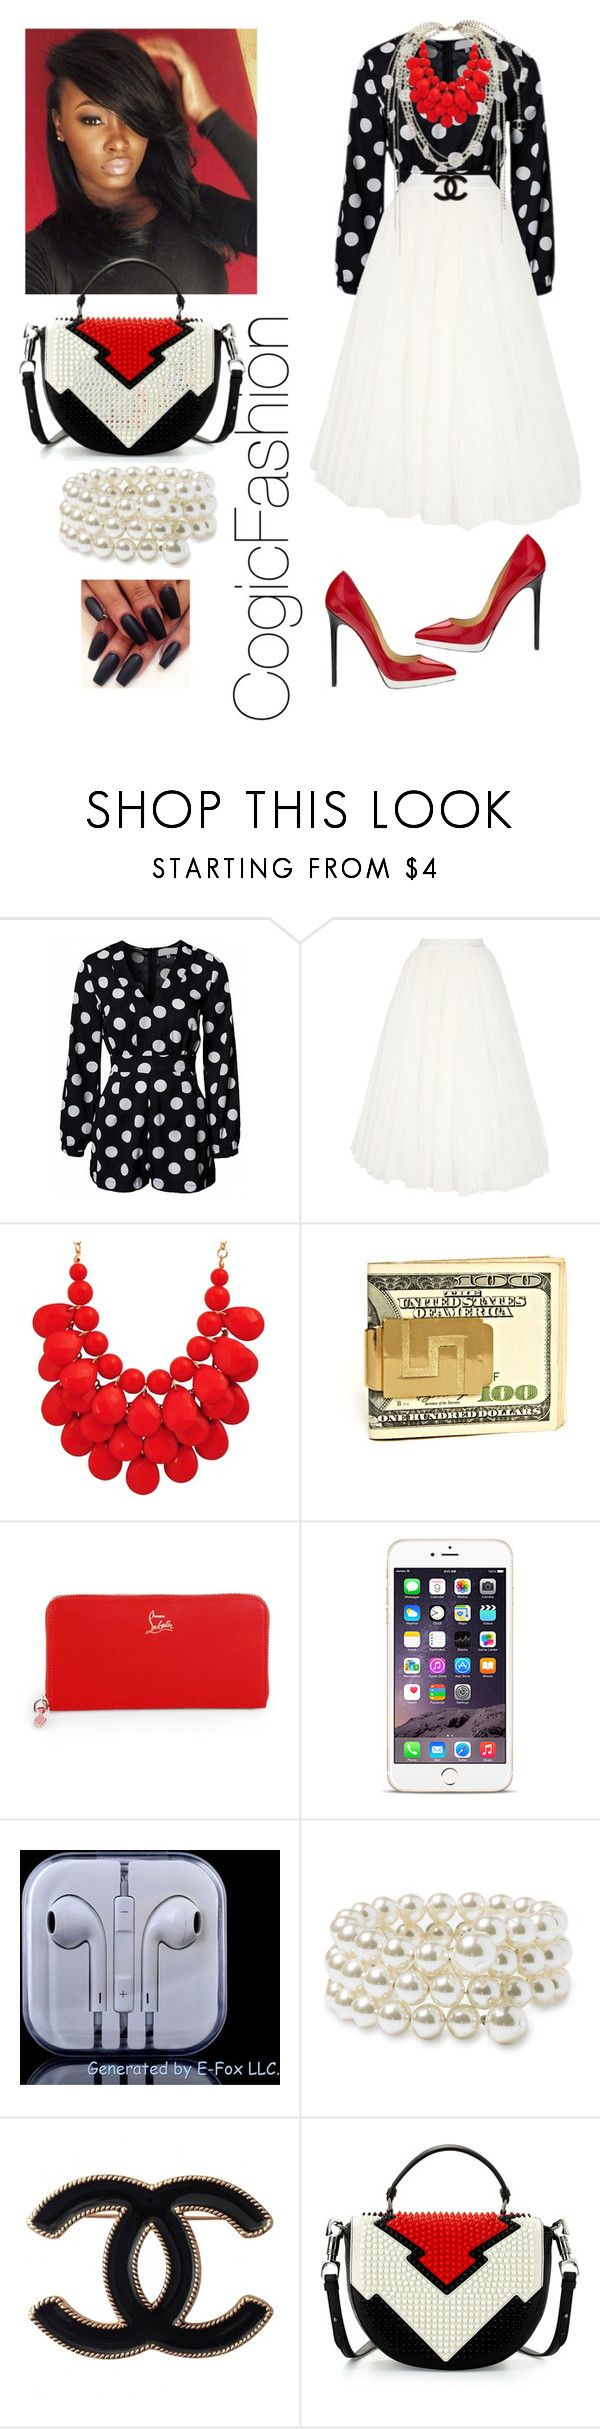 """Communion Sunday!!!"" by cogic-fashion ❤ liked on Polyvore featuring Alberta Ferretti, Chanel, Christian Louboutin and Nordstrom"